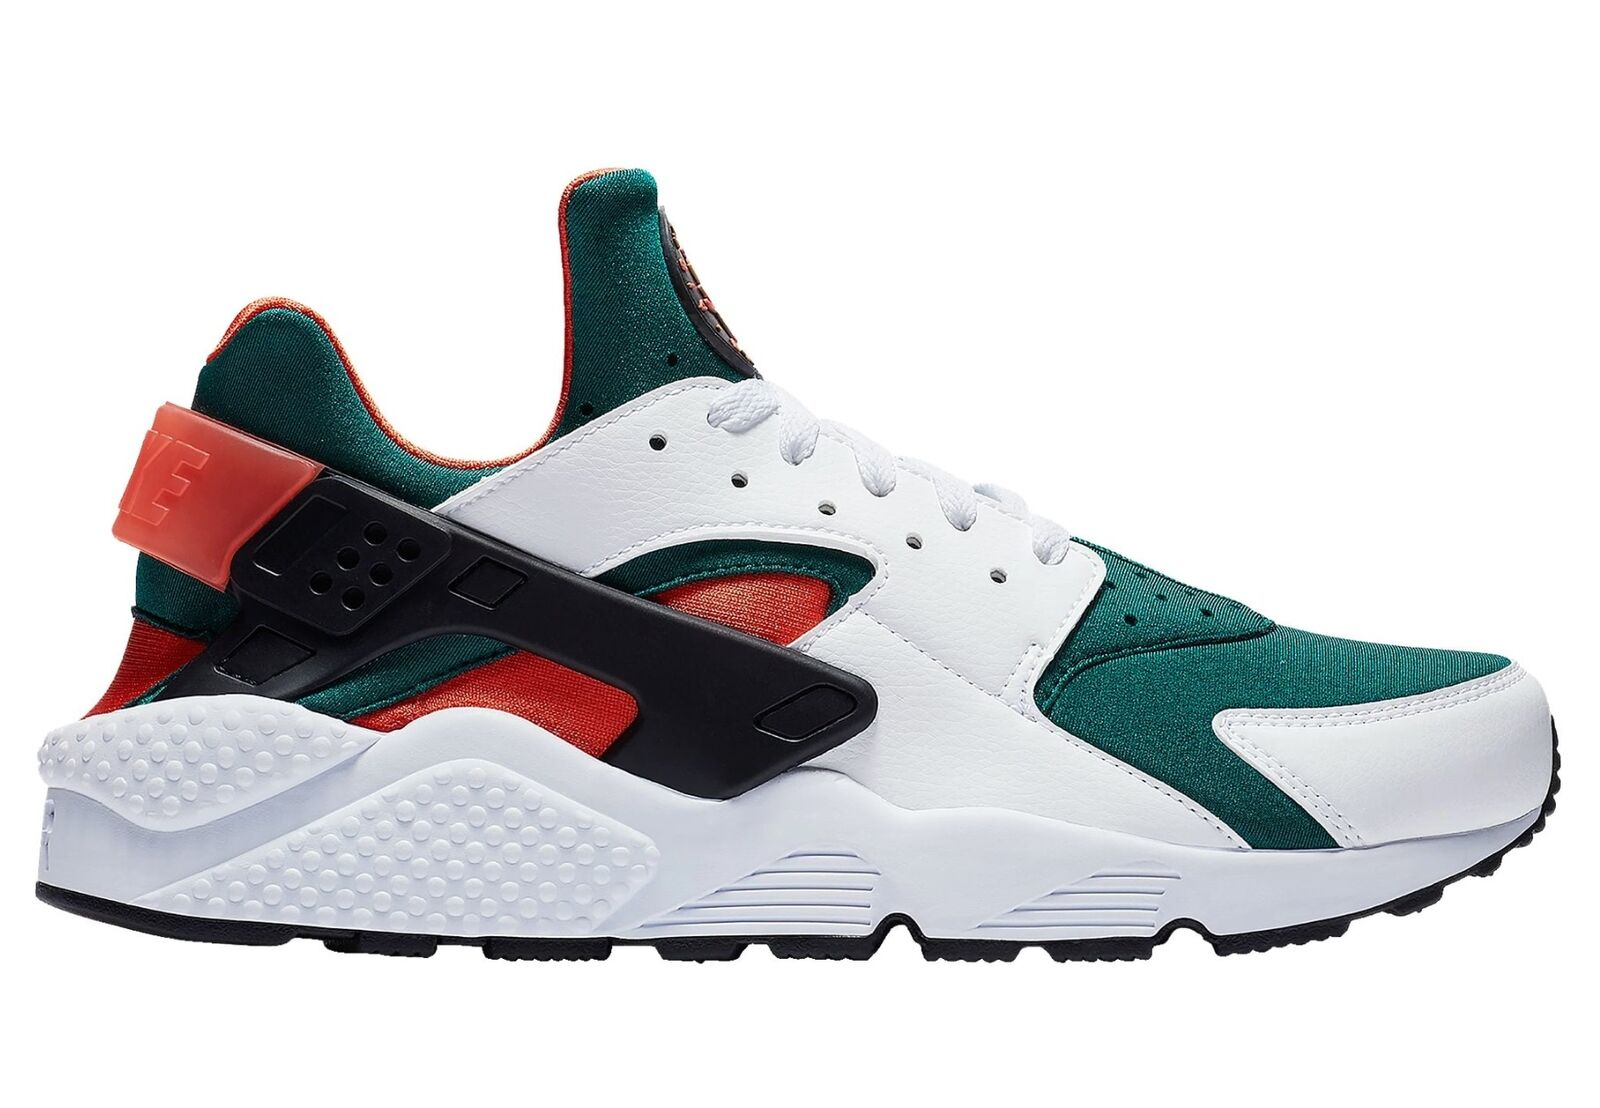 Nike Air Huarache SE Hurricanes Mens AT4254-102 Rainforest Mango Shoes Comfortable Special limited time